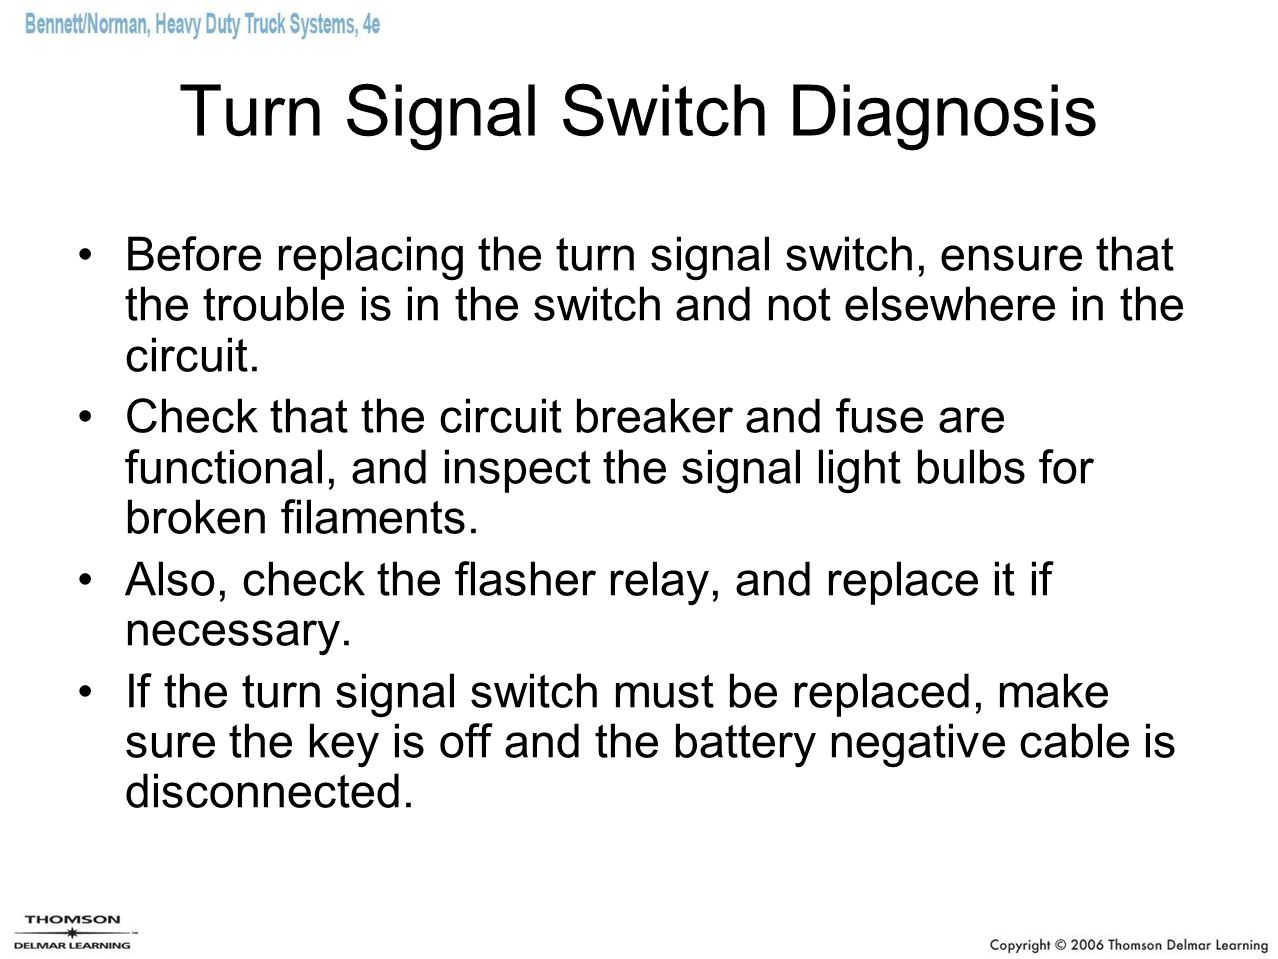 Turn Signal Switch Diagnosis Before replacing the turn signal switch, ensure that the trouble is in the switch and not elsewhere in the circuit. Check